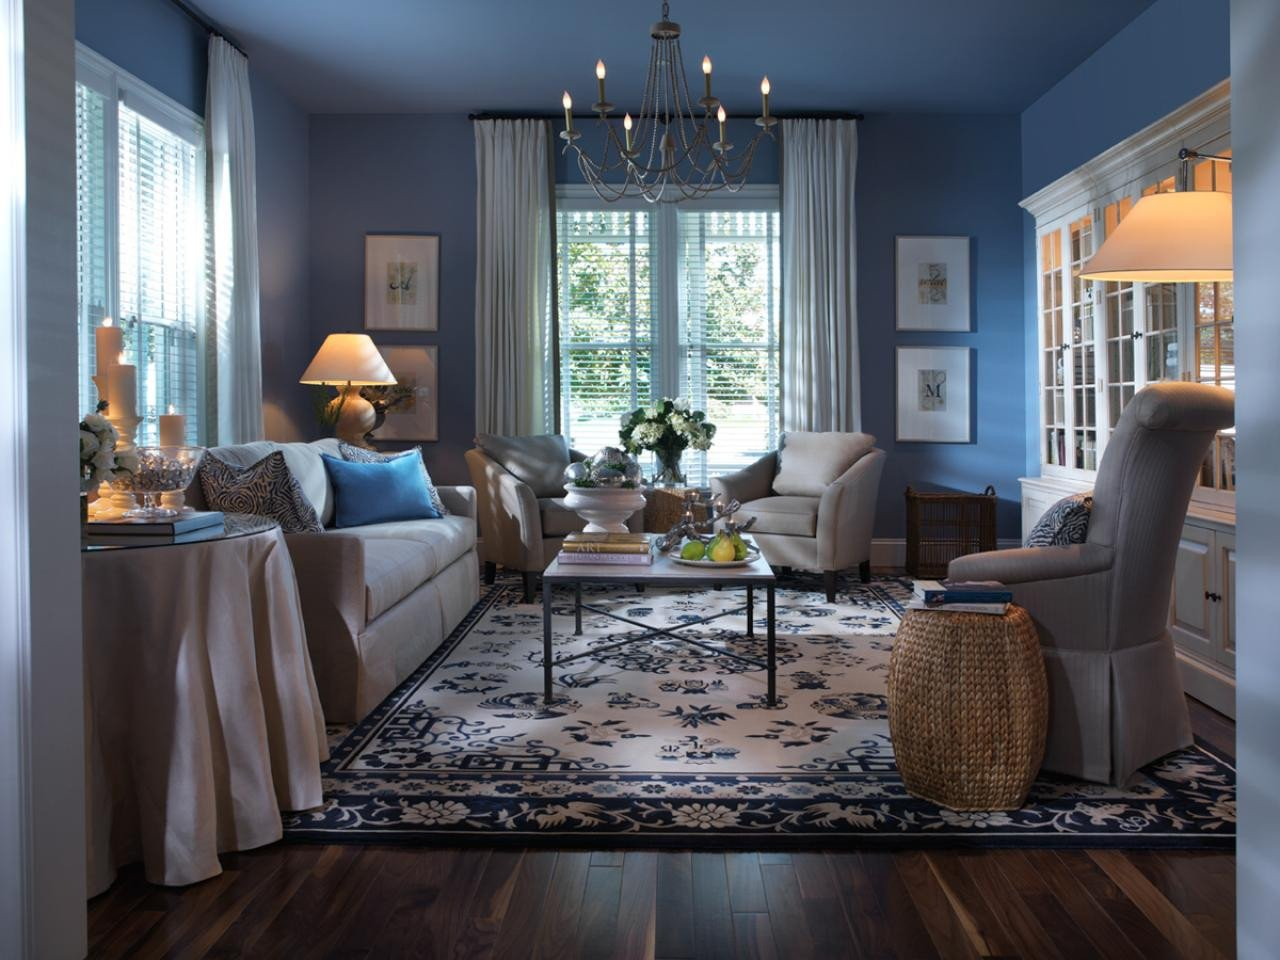 Modern Blue Living Room Decorating Ideas All In the Details Change Your Furniture Personality with